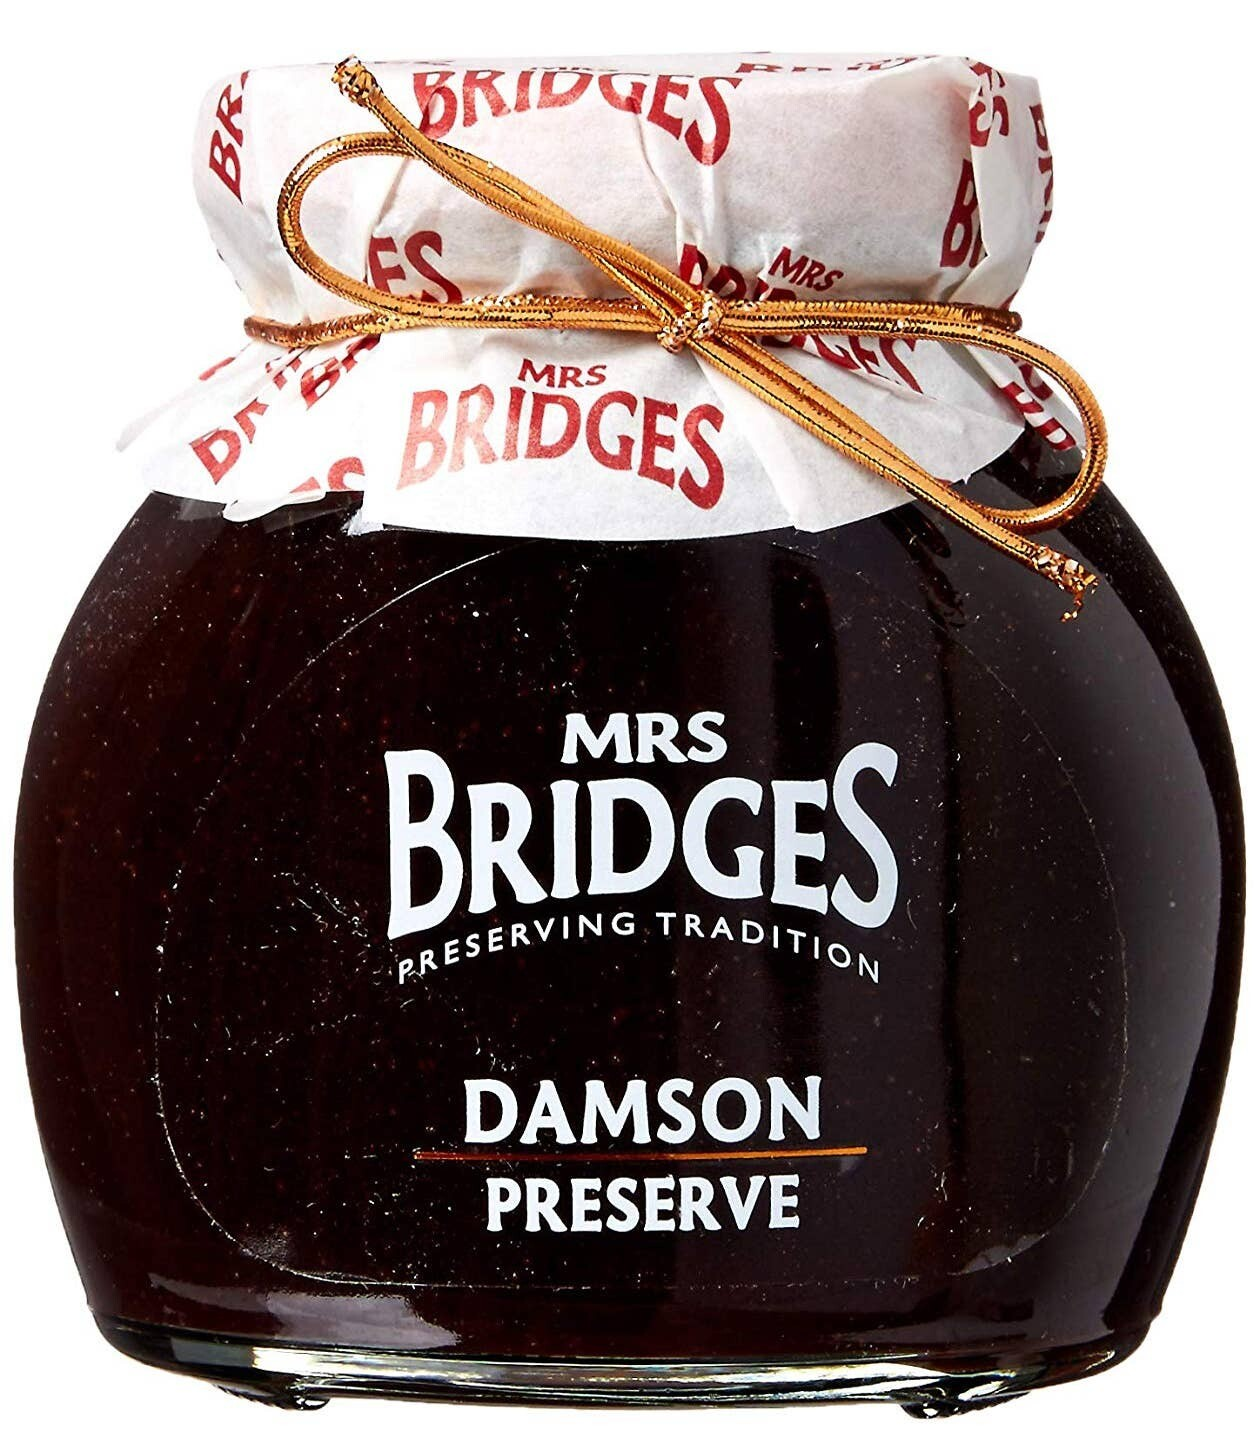 Mrs. Bridges Damson Preserve